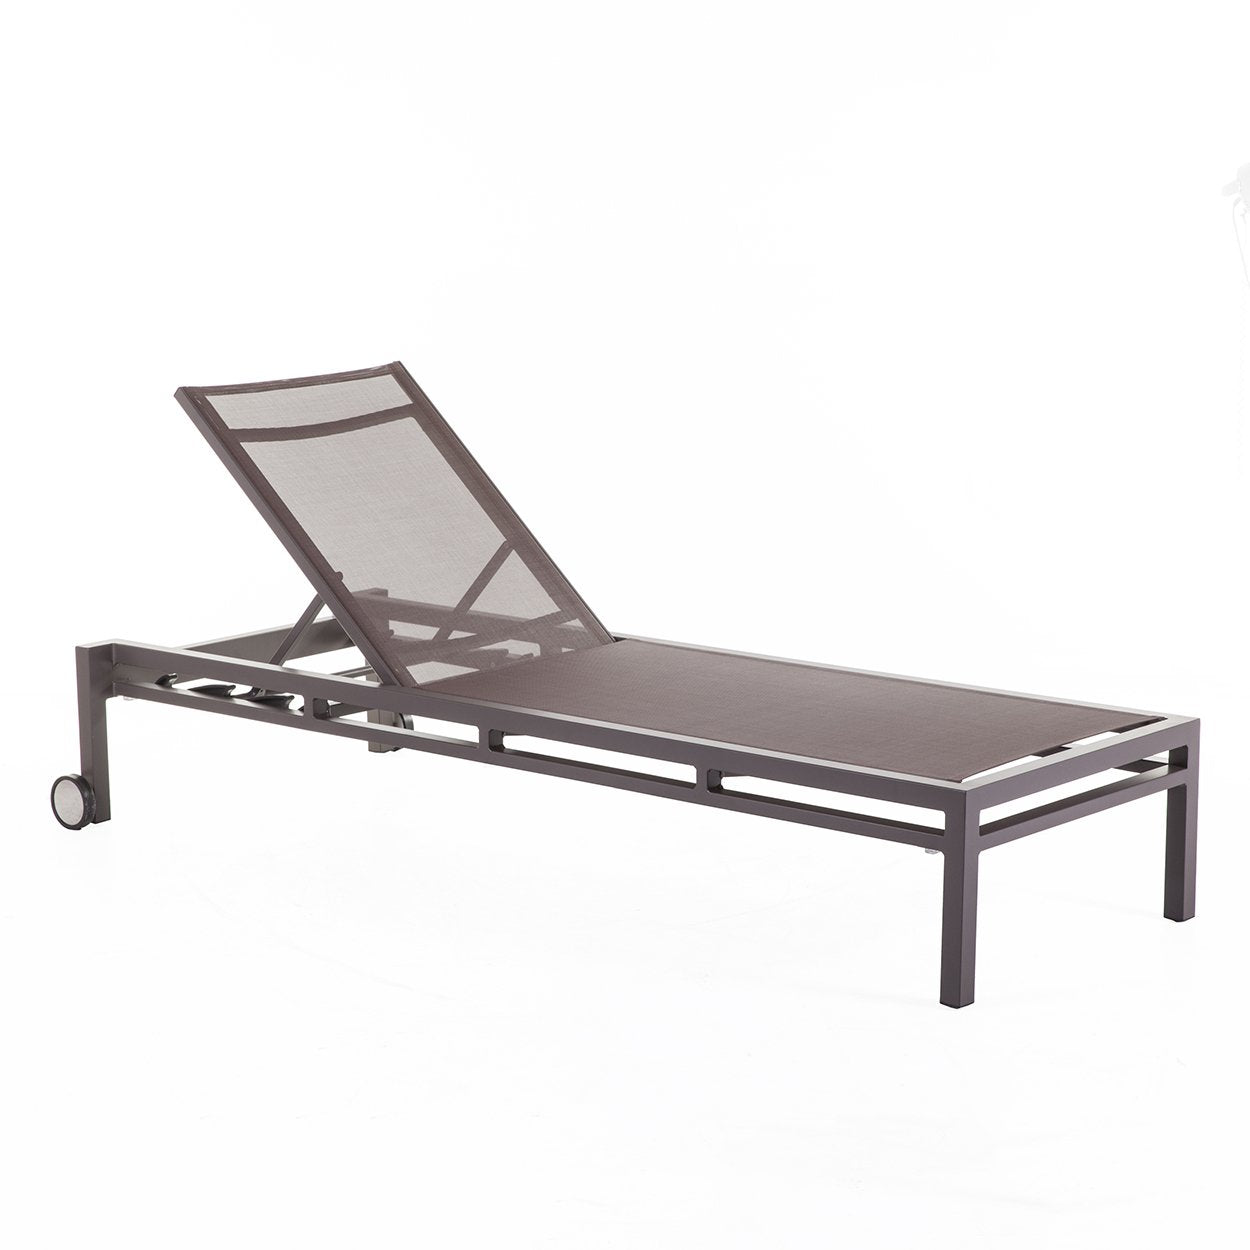 [FCC3759BROWN] Dallas Outdoor Sun Lounger Sale